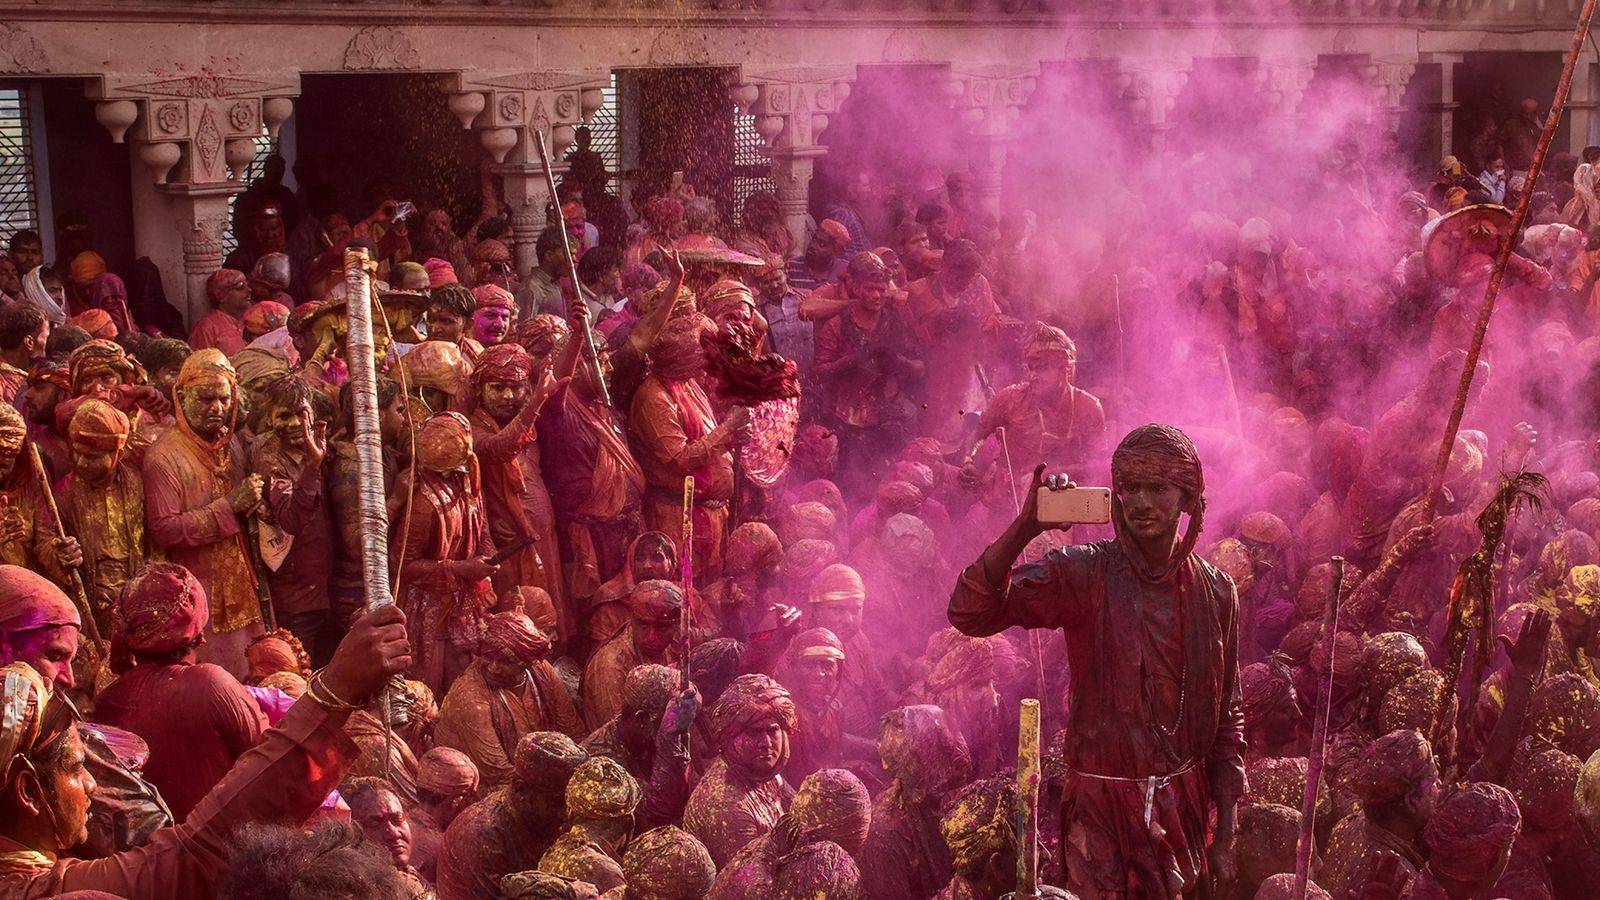 In Holi, ancient traditions are celebrated in a modern way. Mobile phones — ubiquitous symbols of ...